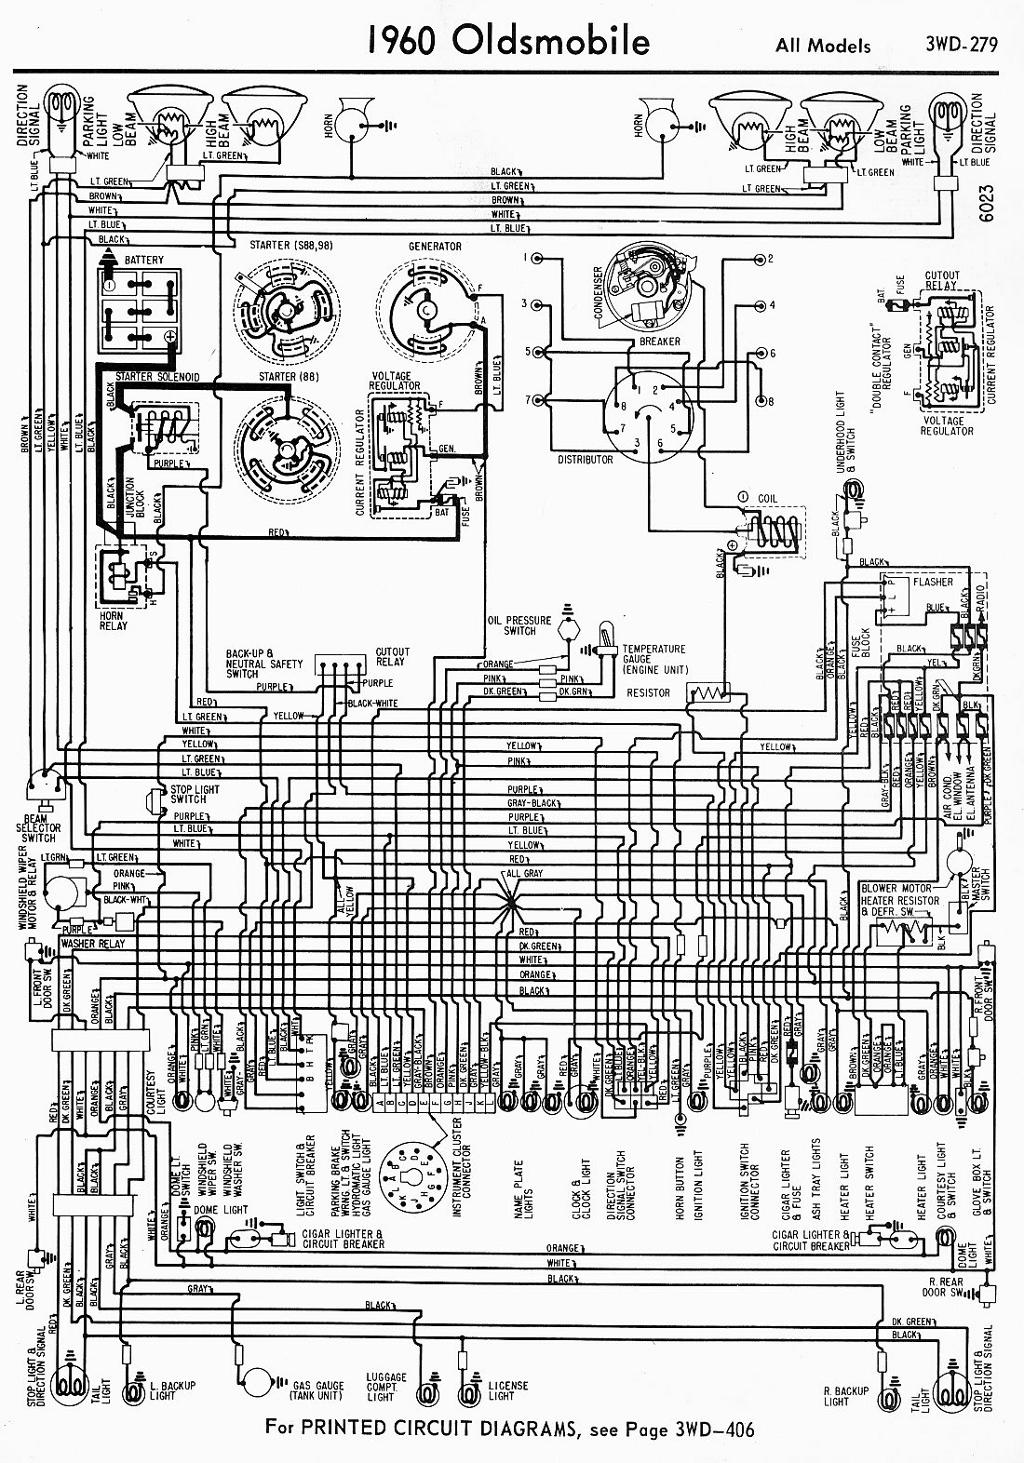 Snap 1965 Chevy Impala Wiring Diagram 32 Images 1911 Pistol Free Download Diagrams Pictures 1962 Oldsmobile 30 Love Stories